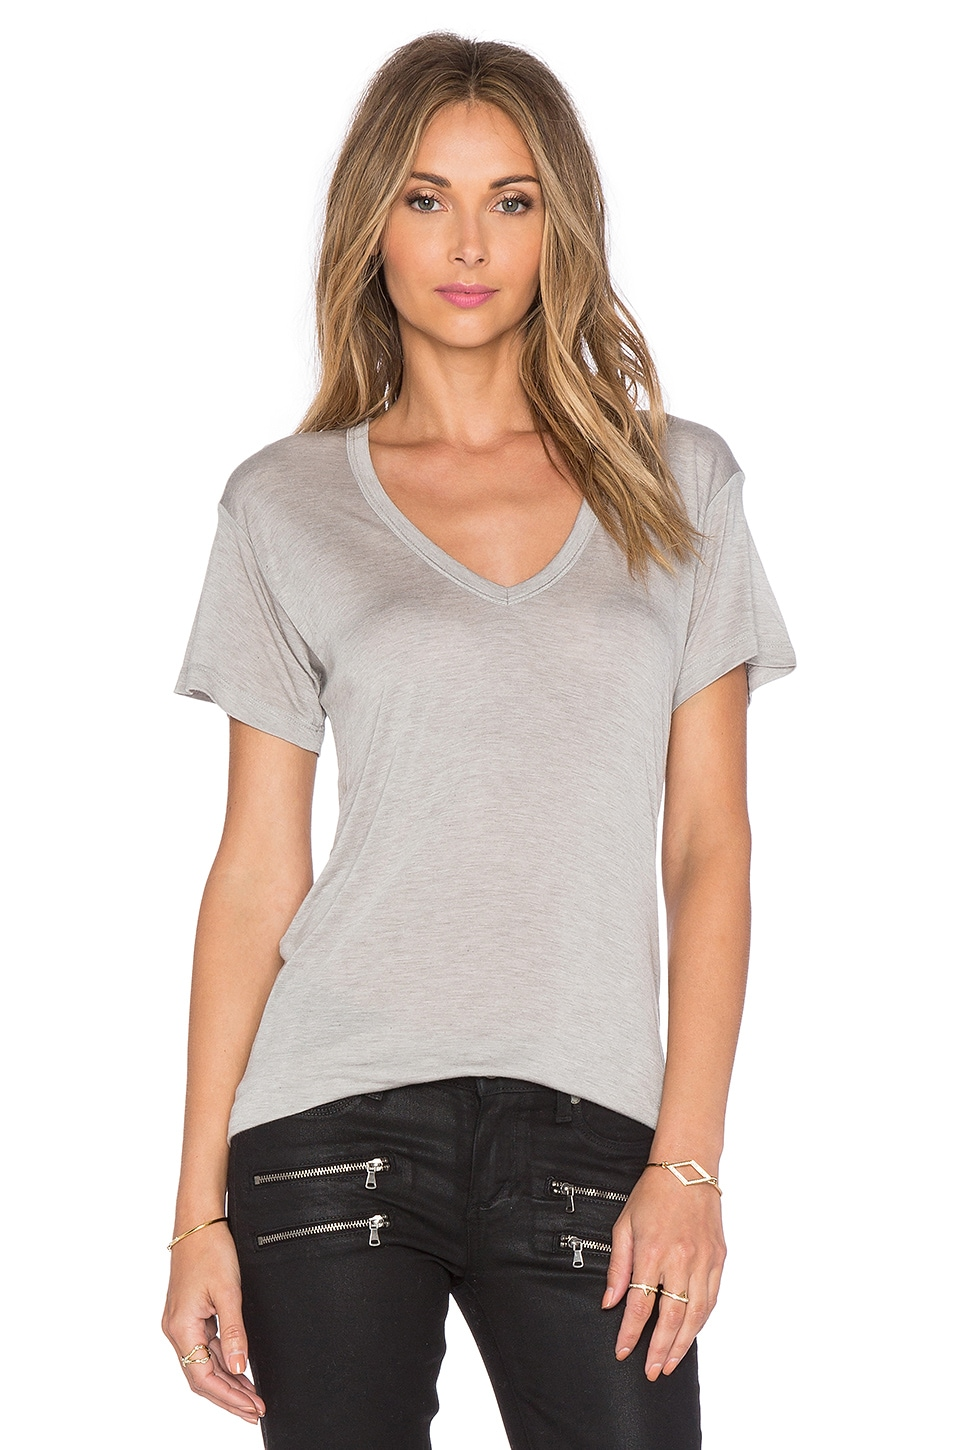 Kain Sheer Jersey Classic V Neck in Heather Grey